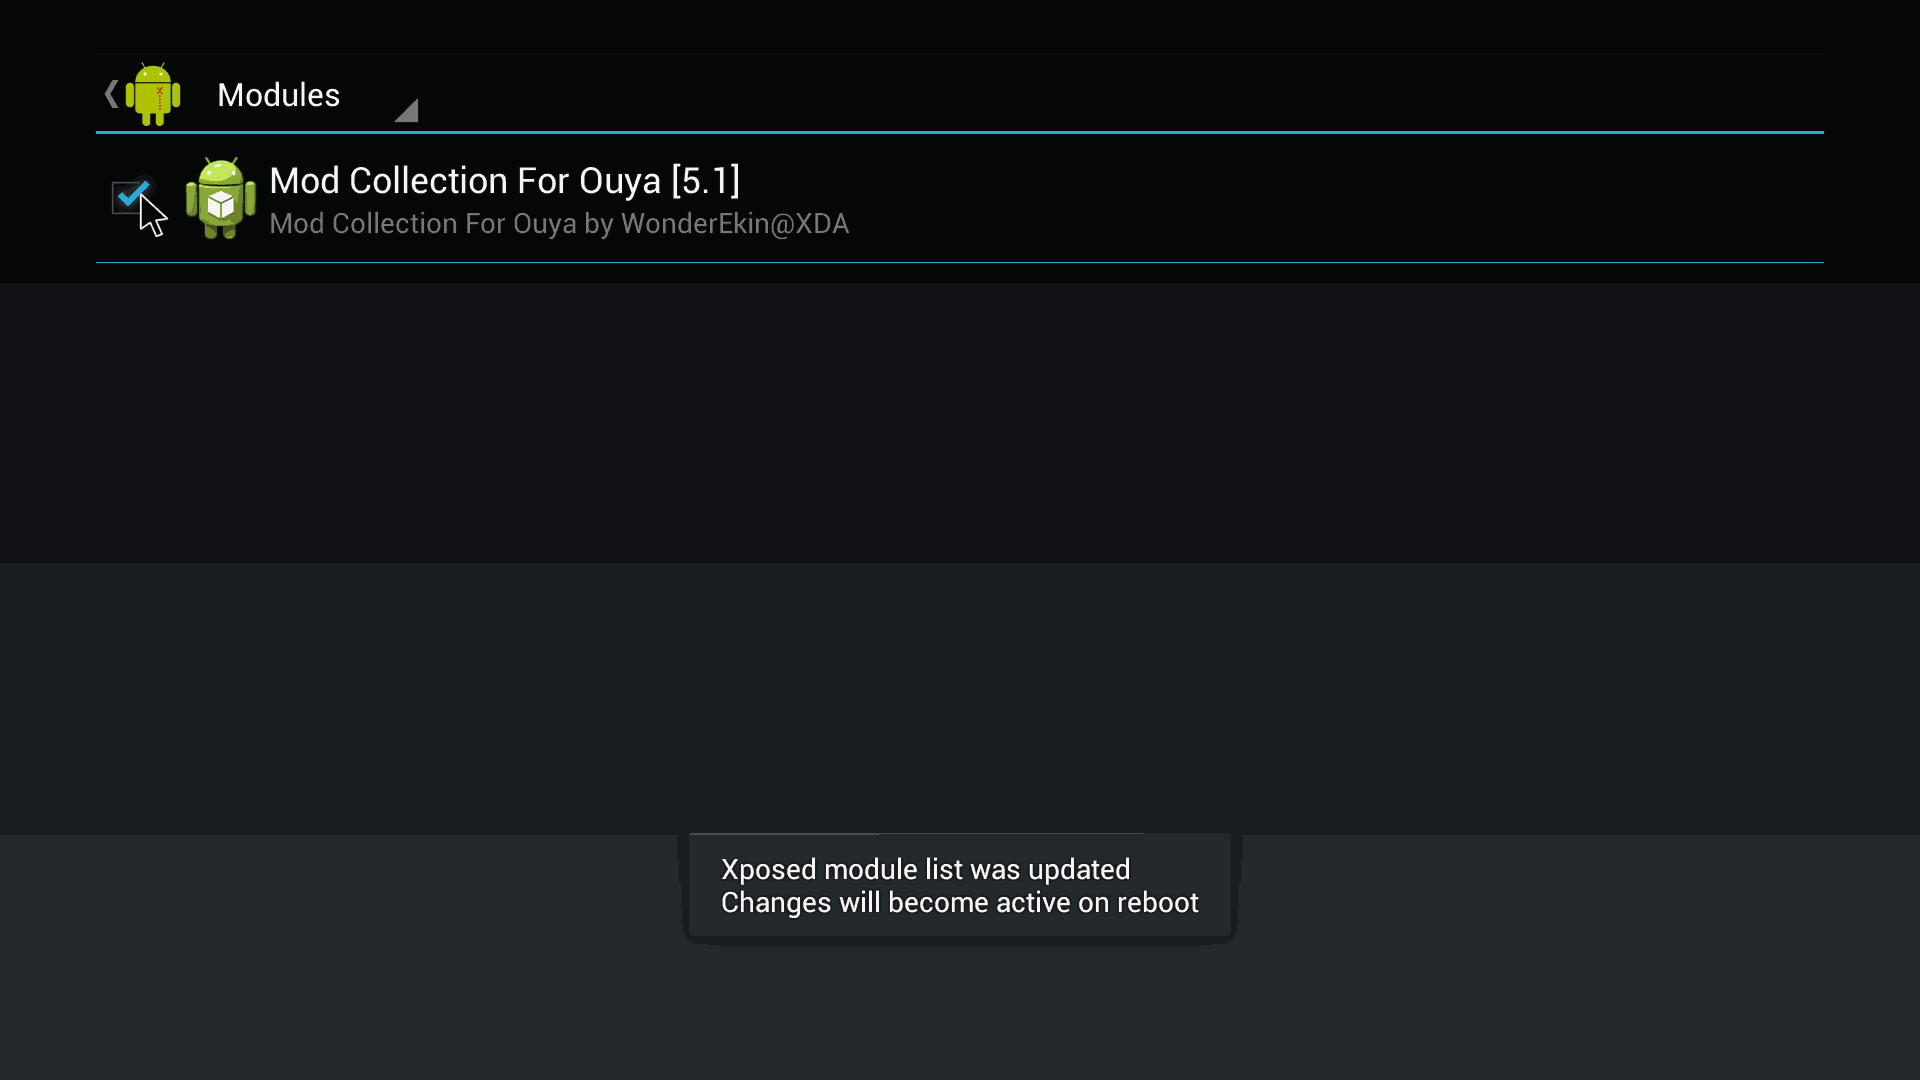 Xposed Check-Box for Mod Collection for Ouya.